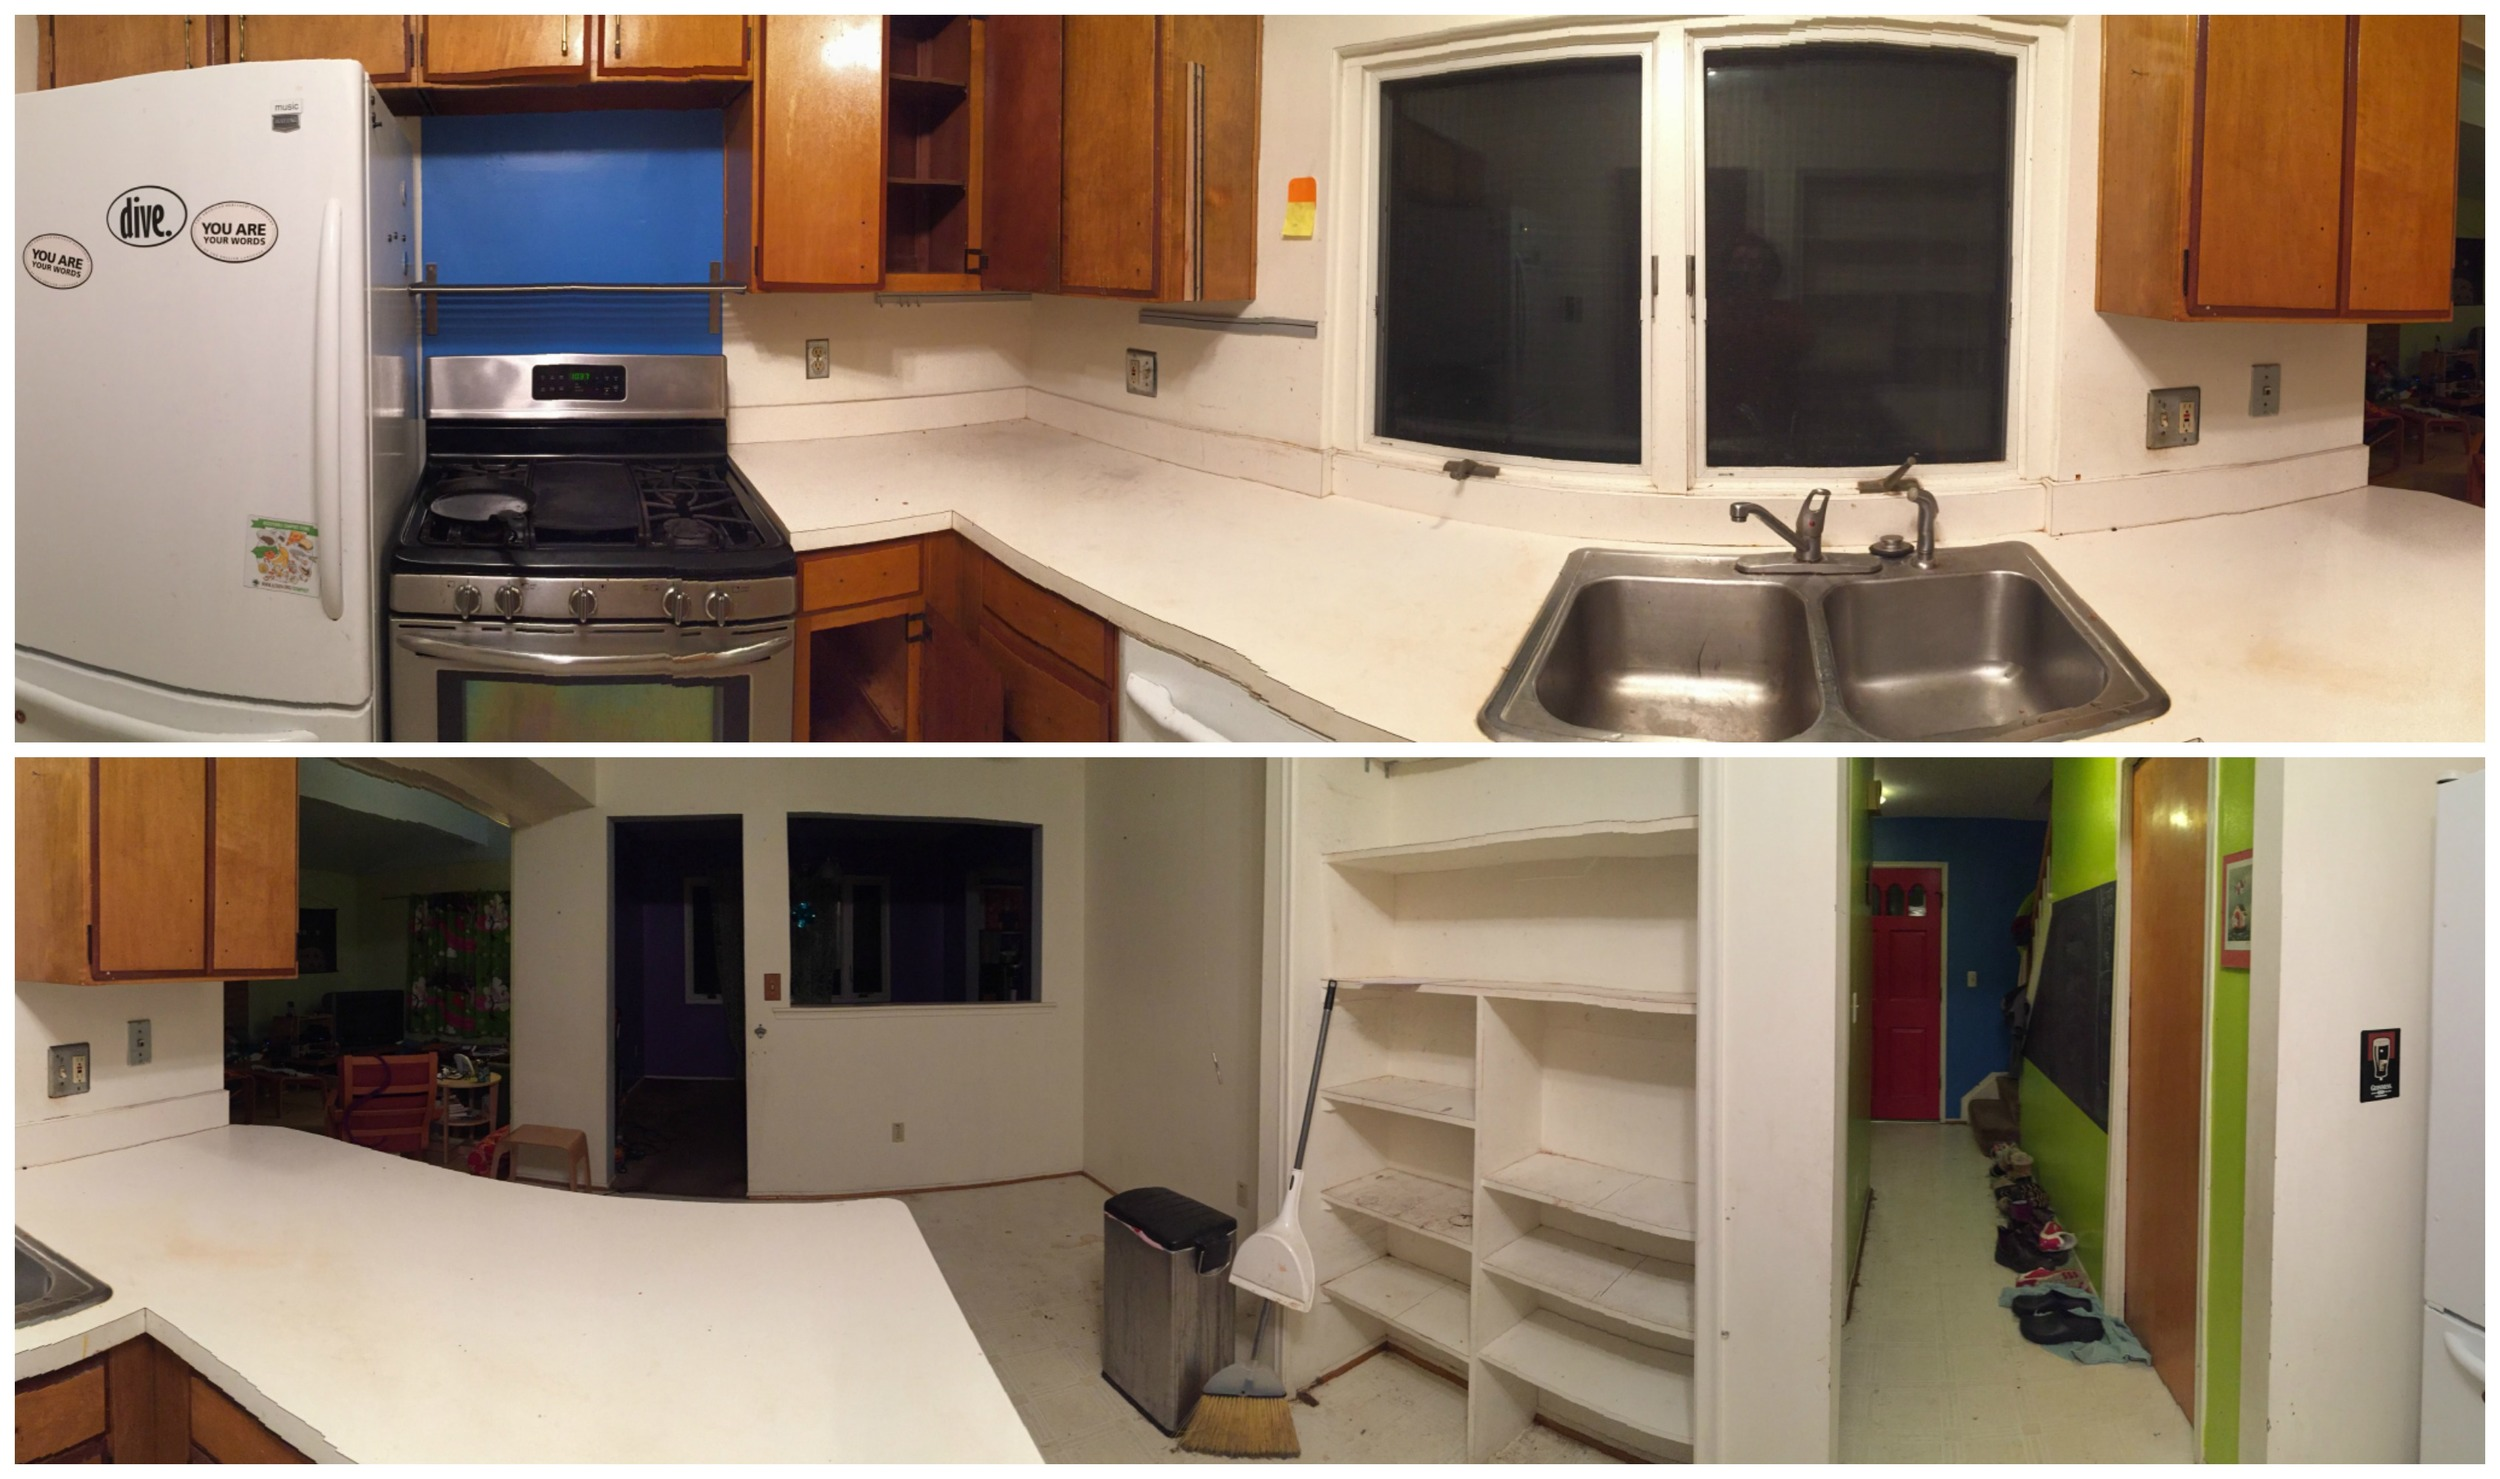 The before kitchen